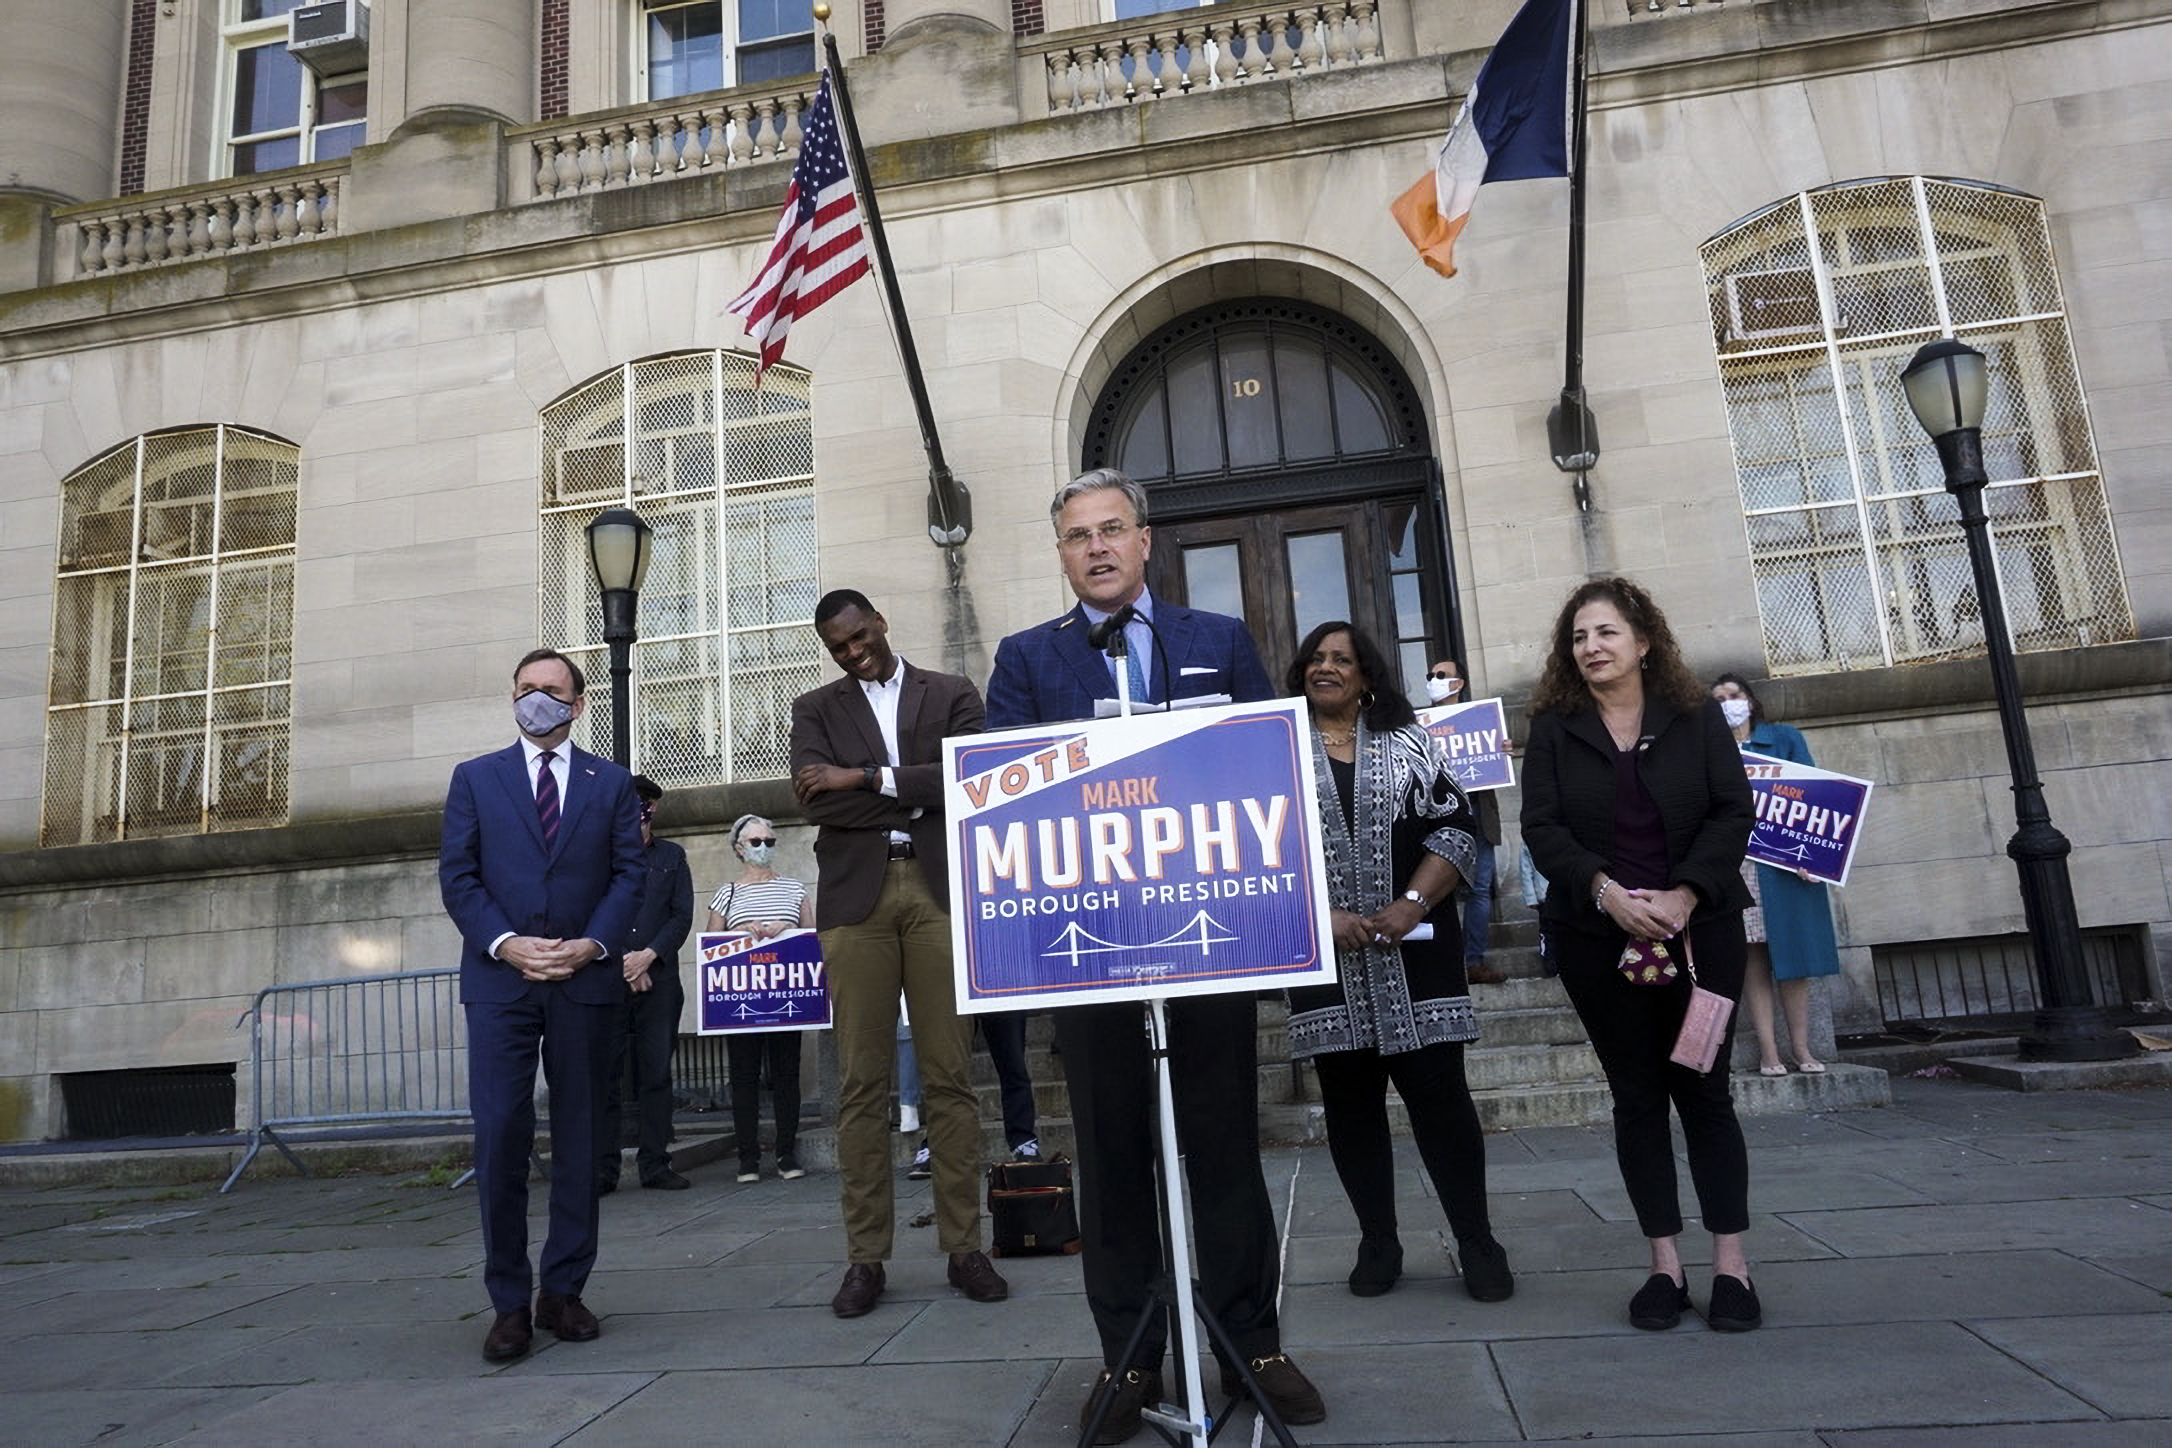 Mark Murphy, a Democrat running for Staten Island Borough President, received the endorsement of the borough's Democratic delegation on Thursday.